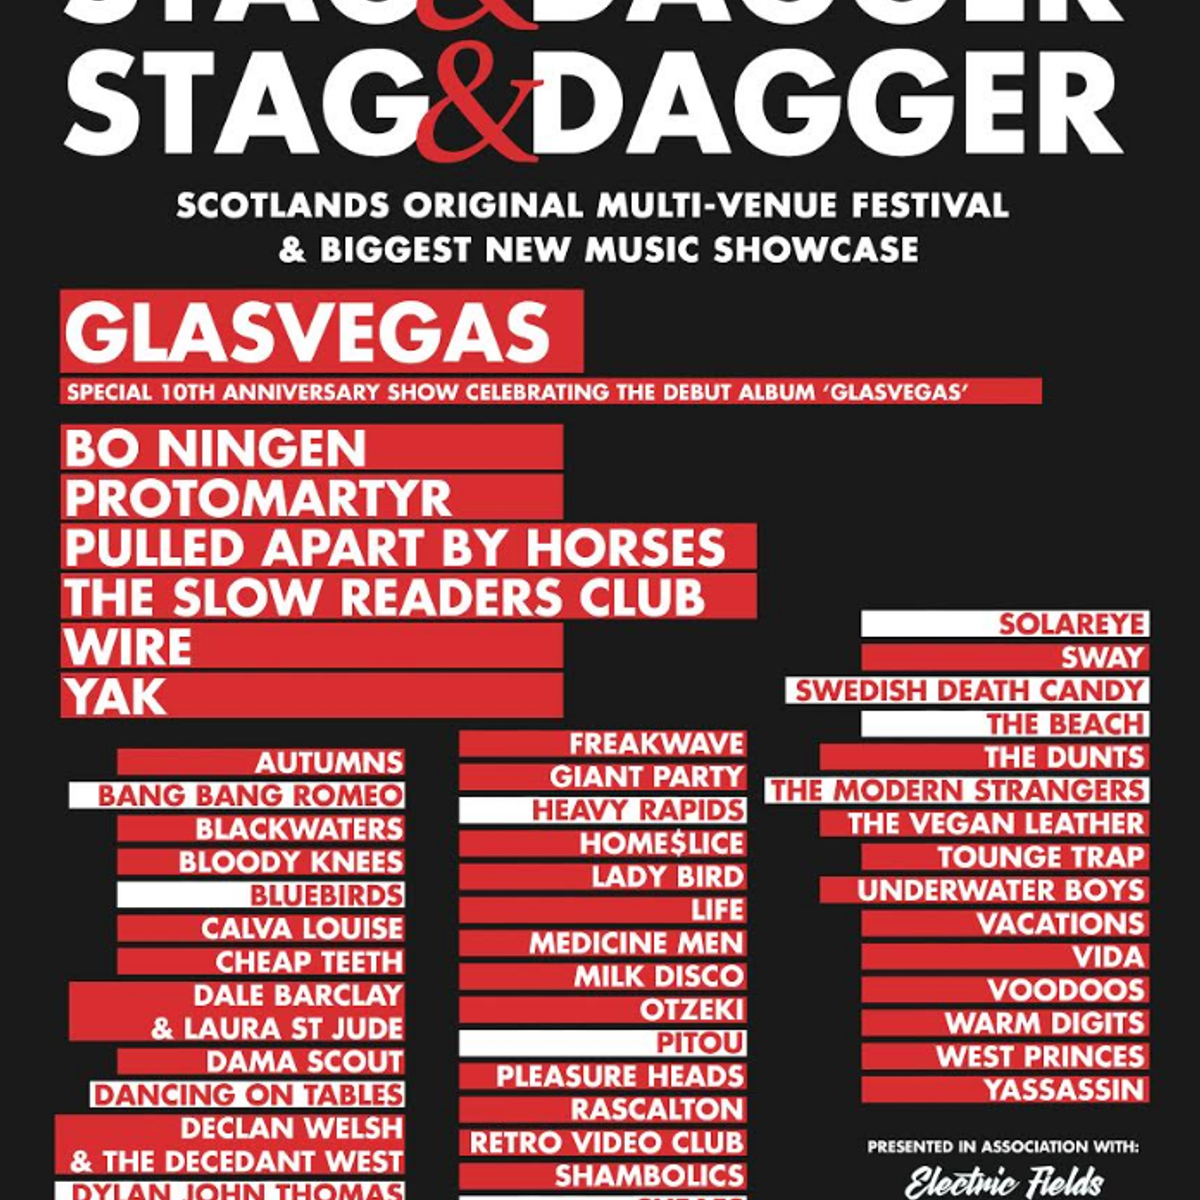 pcl presents stag dagger at nice n sleazy glasgow on 06 may 2018